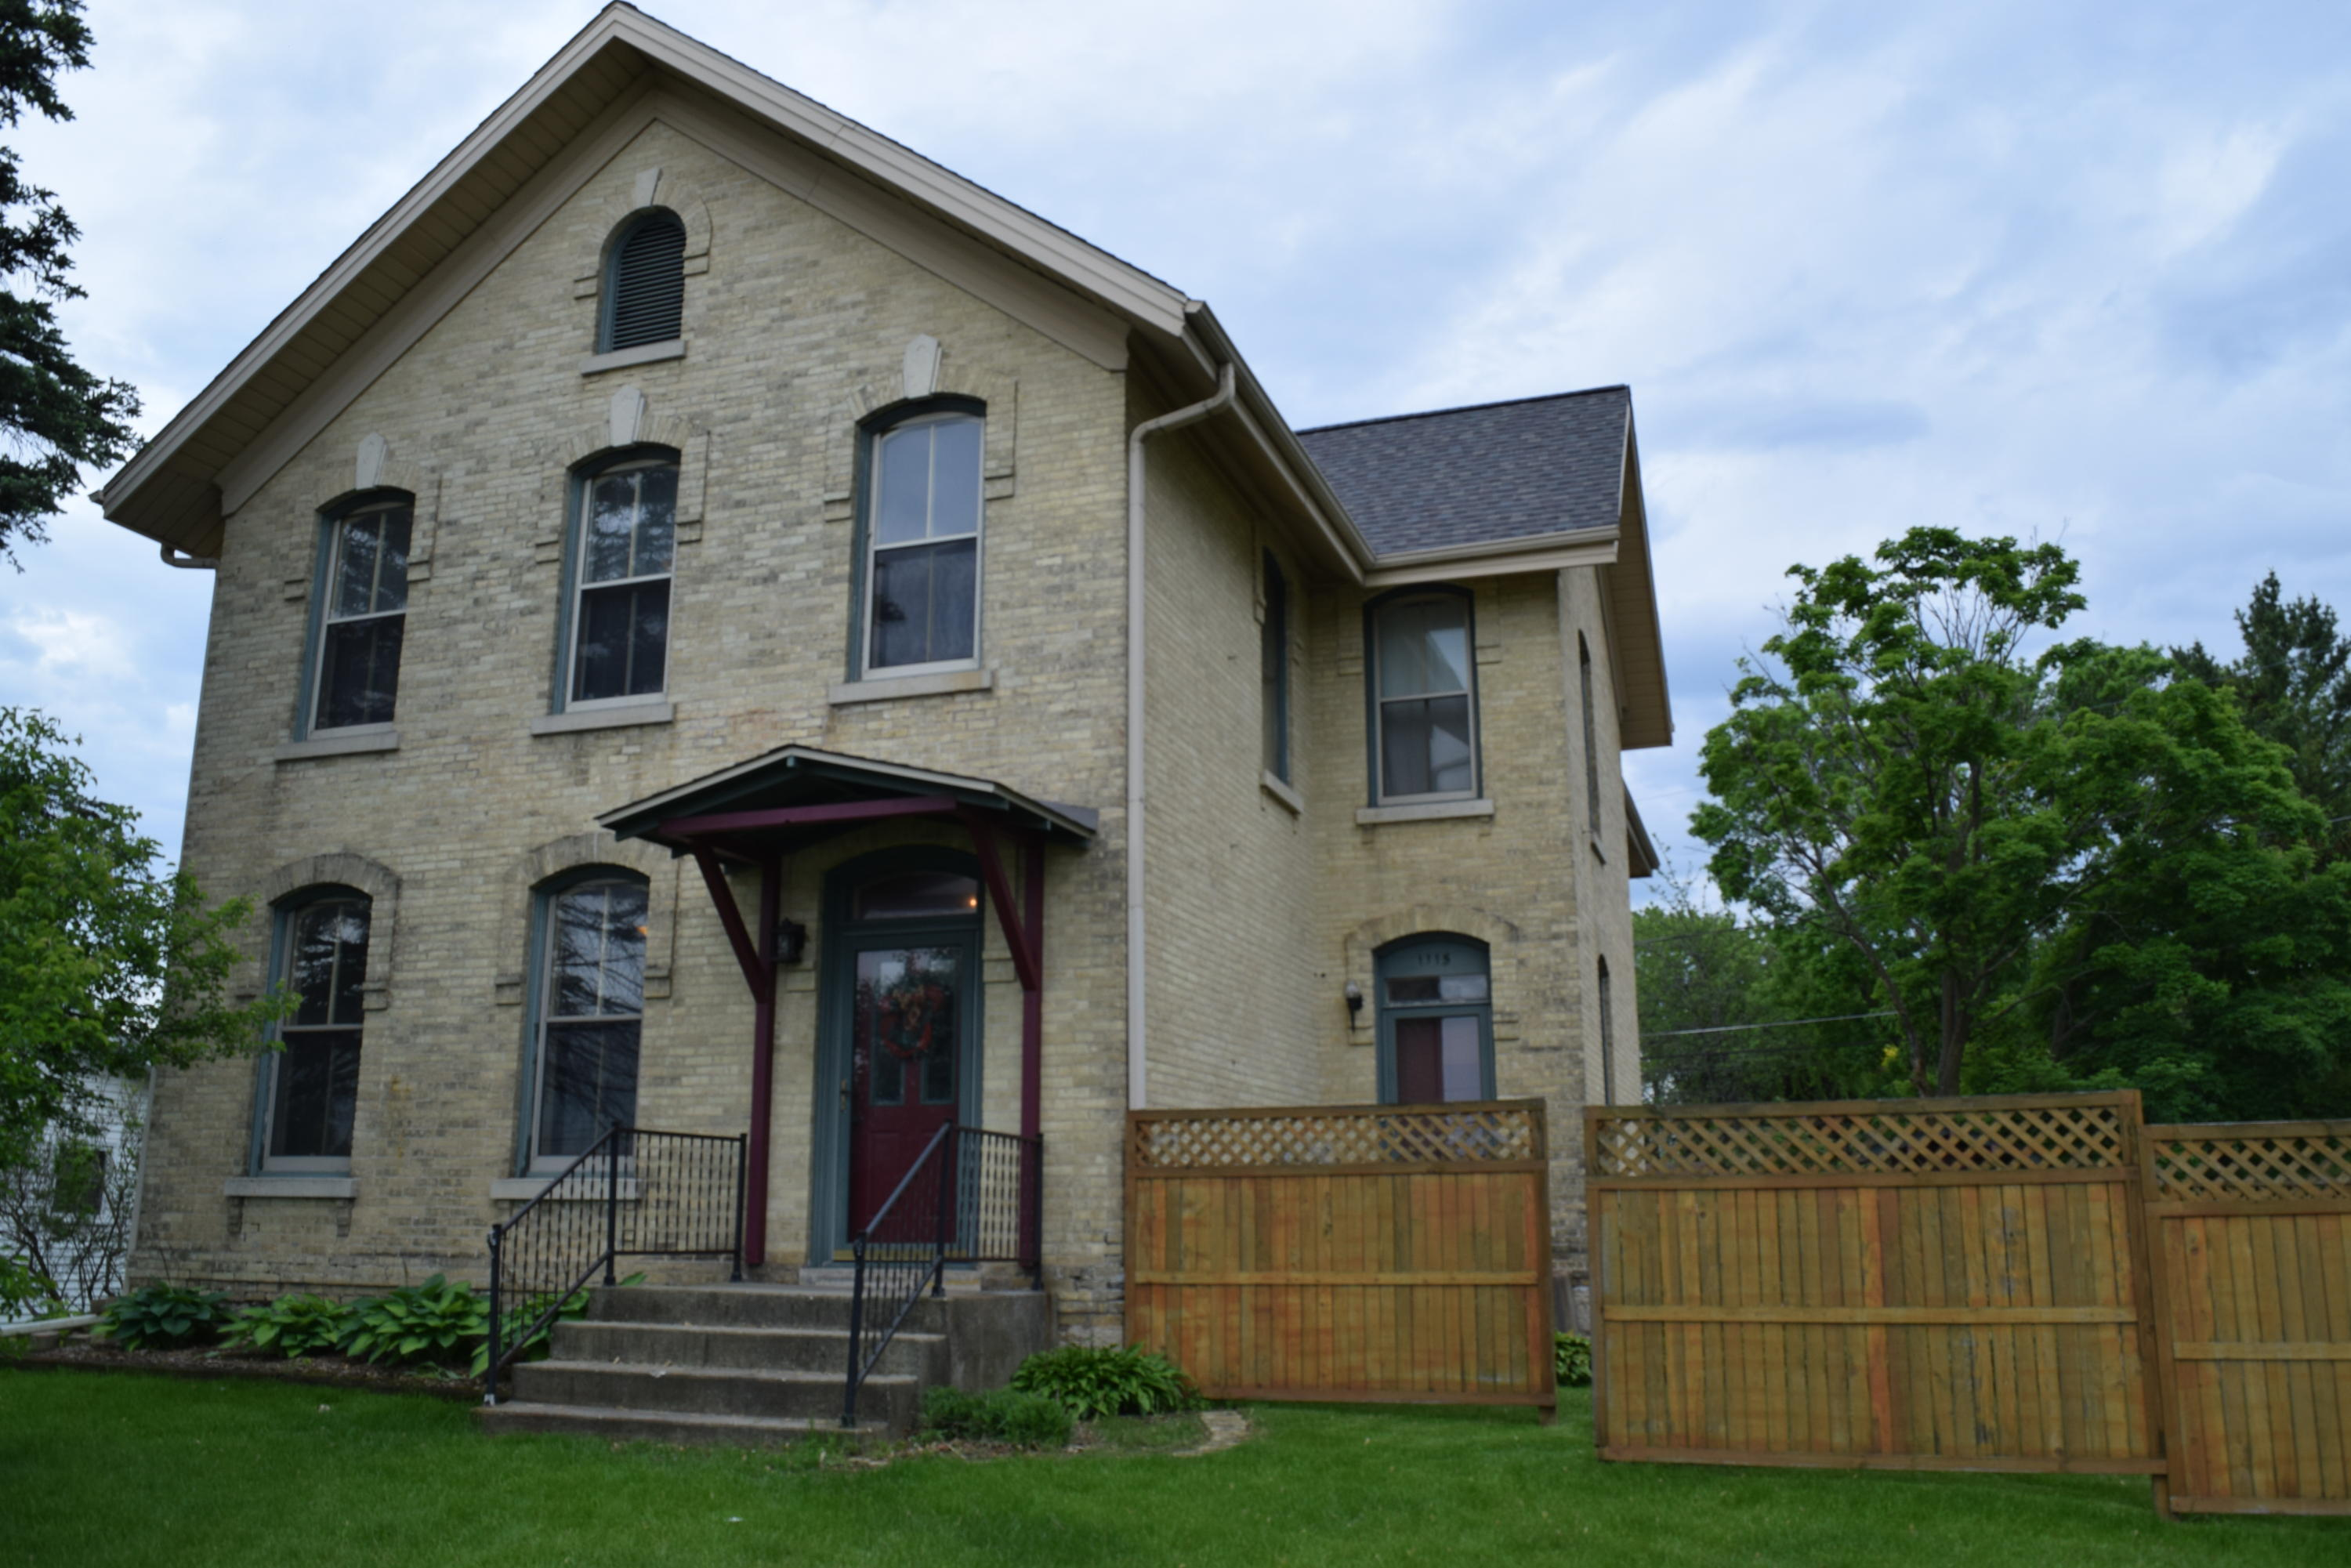 1115 Sunset Dr, Waukesha, Wisconsin 53189, 5 Bedrooms Bedrooms, 11 Rooms Rooms,2 BathroomsBathrooms,Single-Family,For Sale,Sunset Dr,1641145